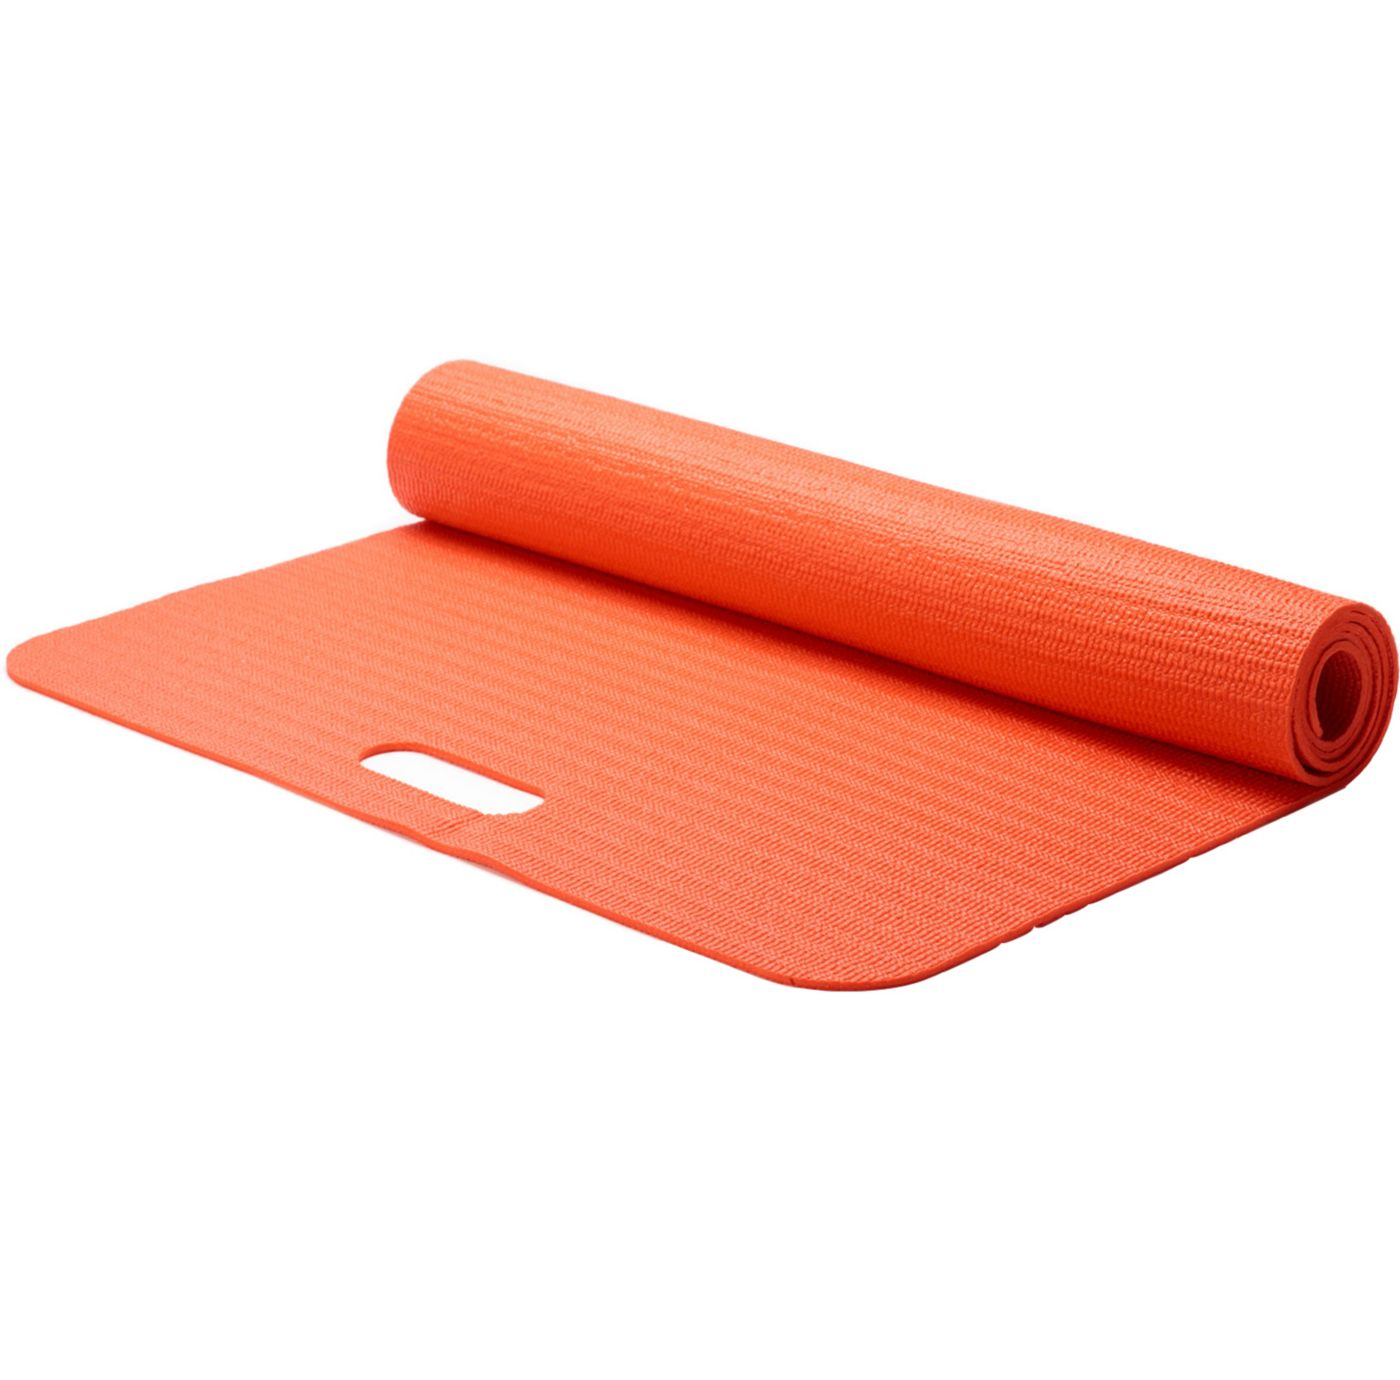 STOTT PILATES Kids' 4mm Super Starbright Eco Yoga Mat